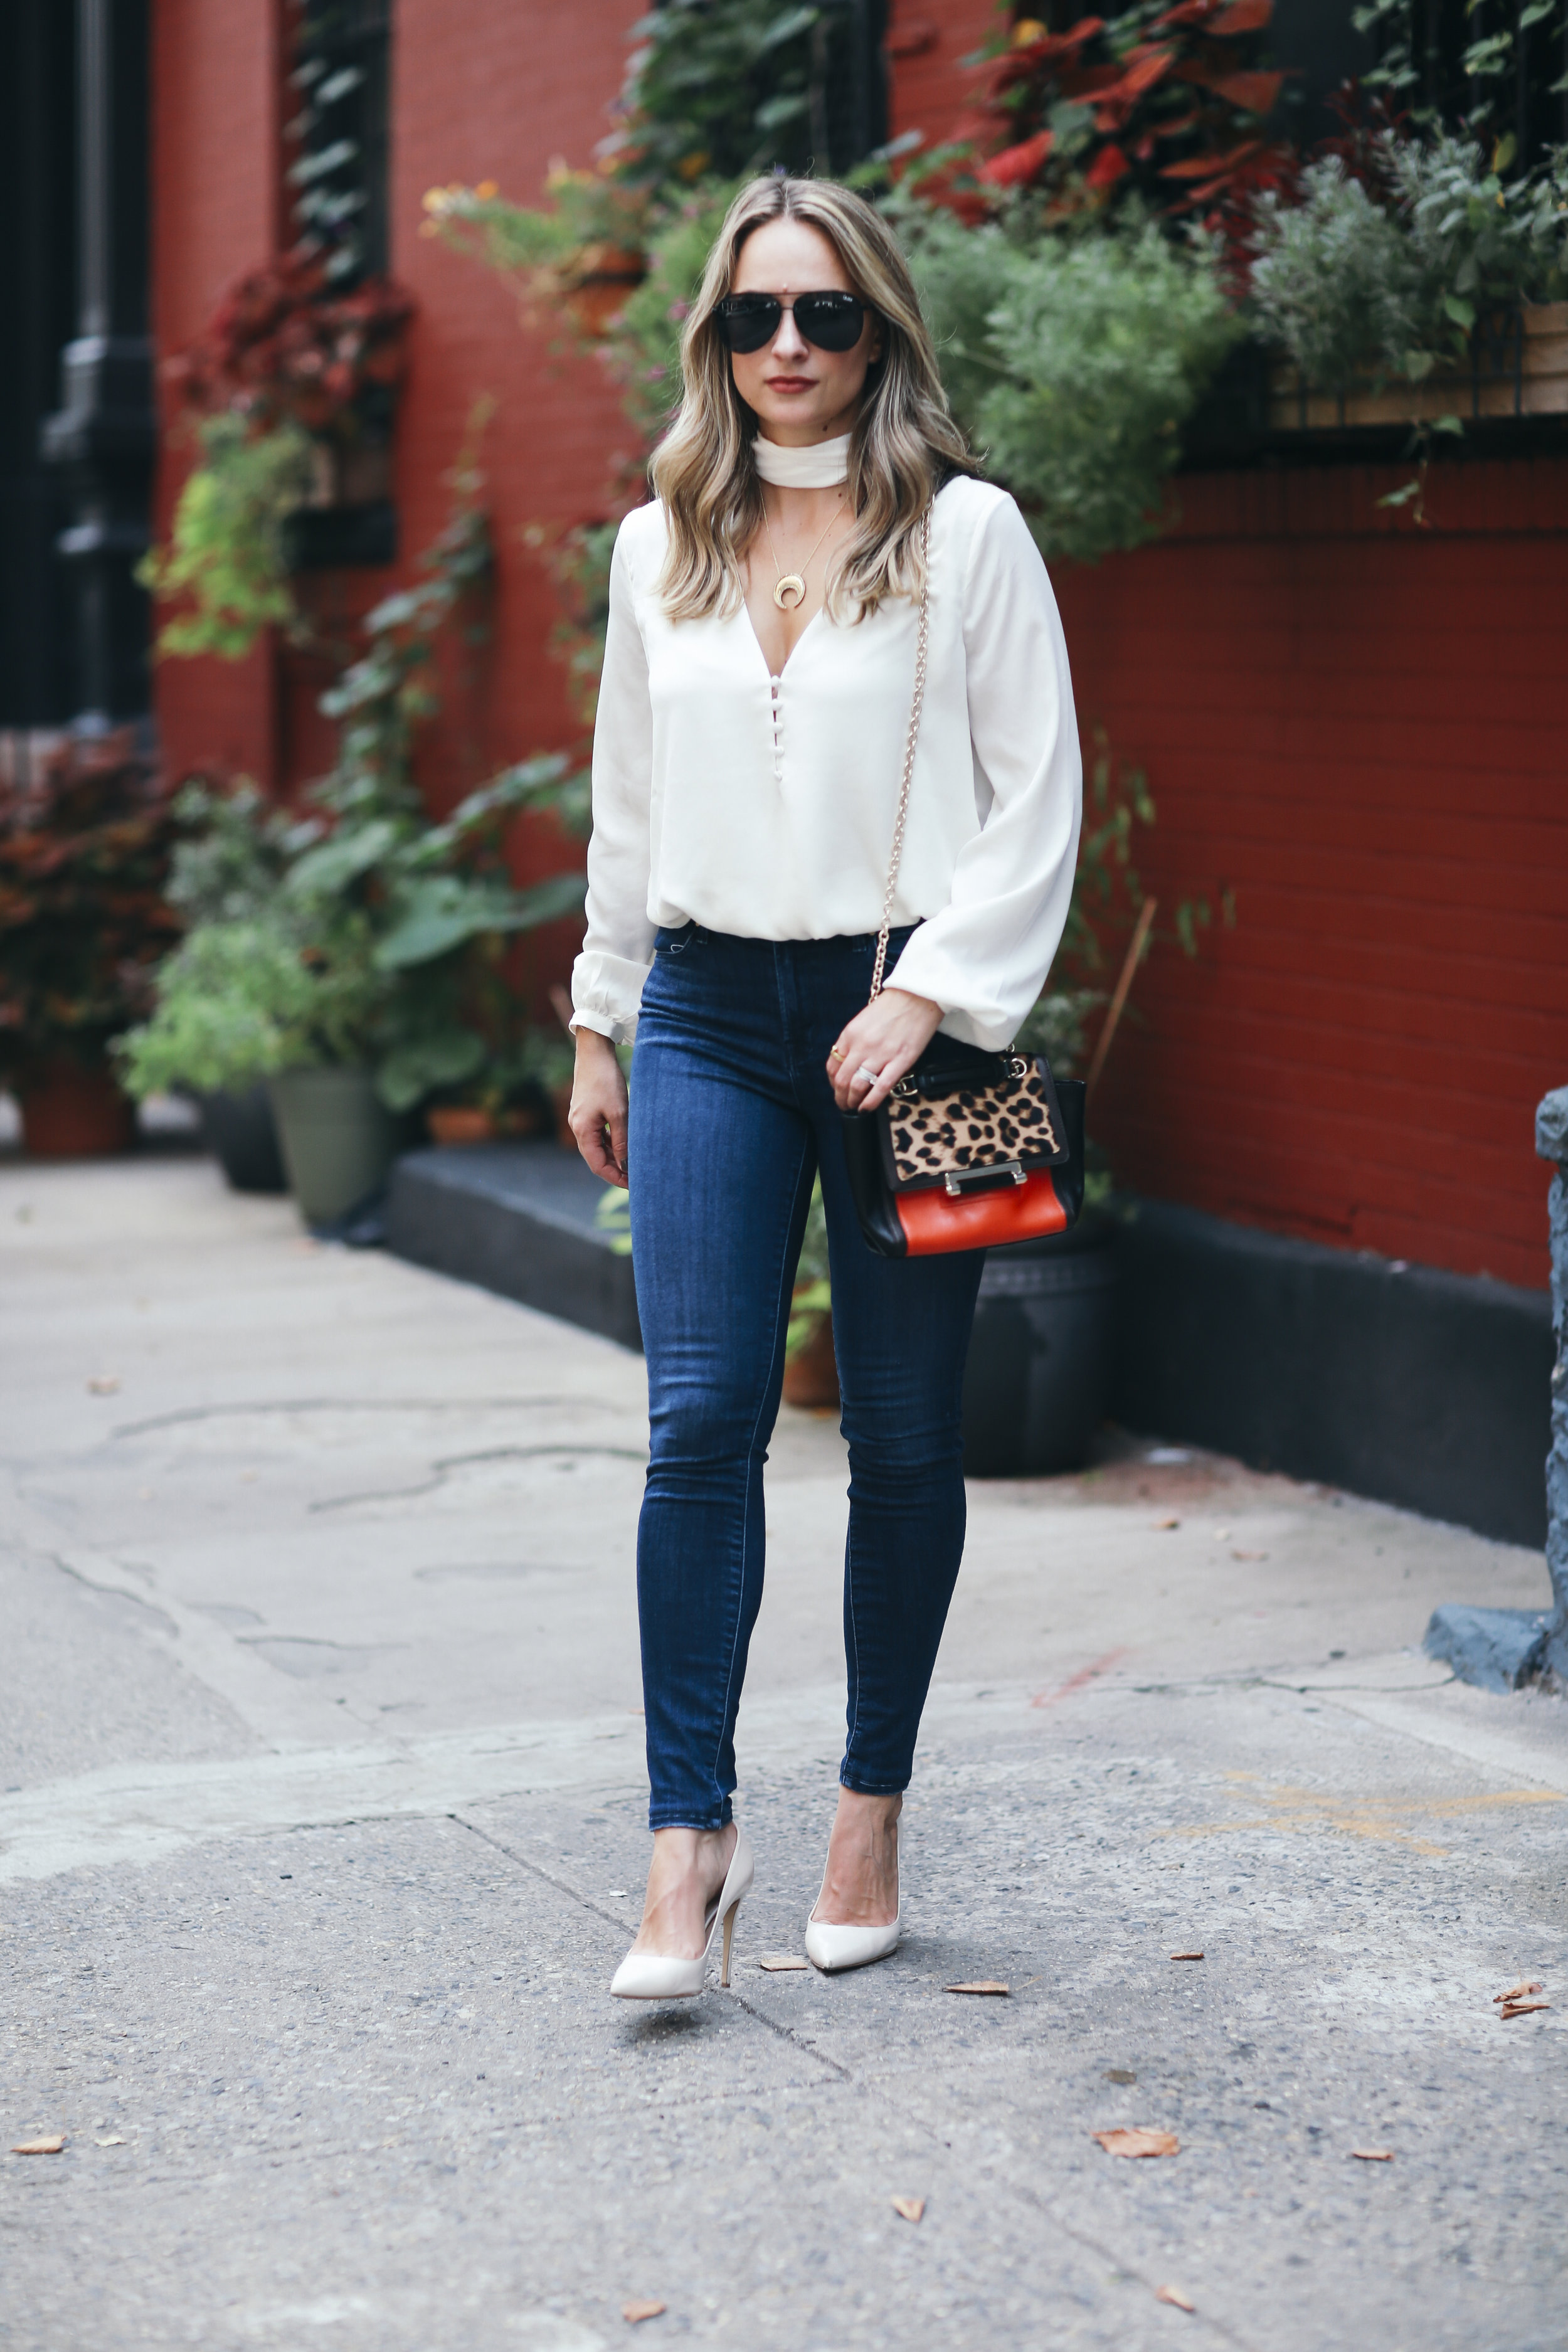 the perfect casual outfit